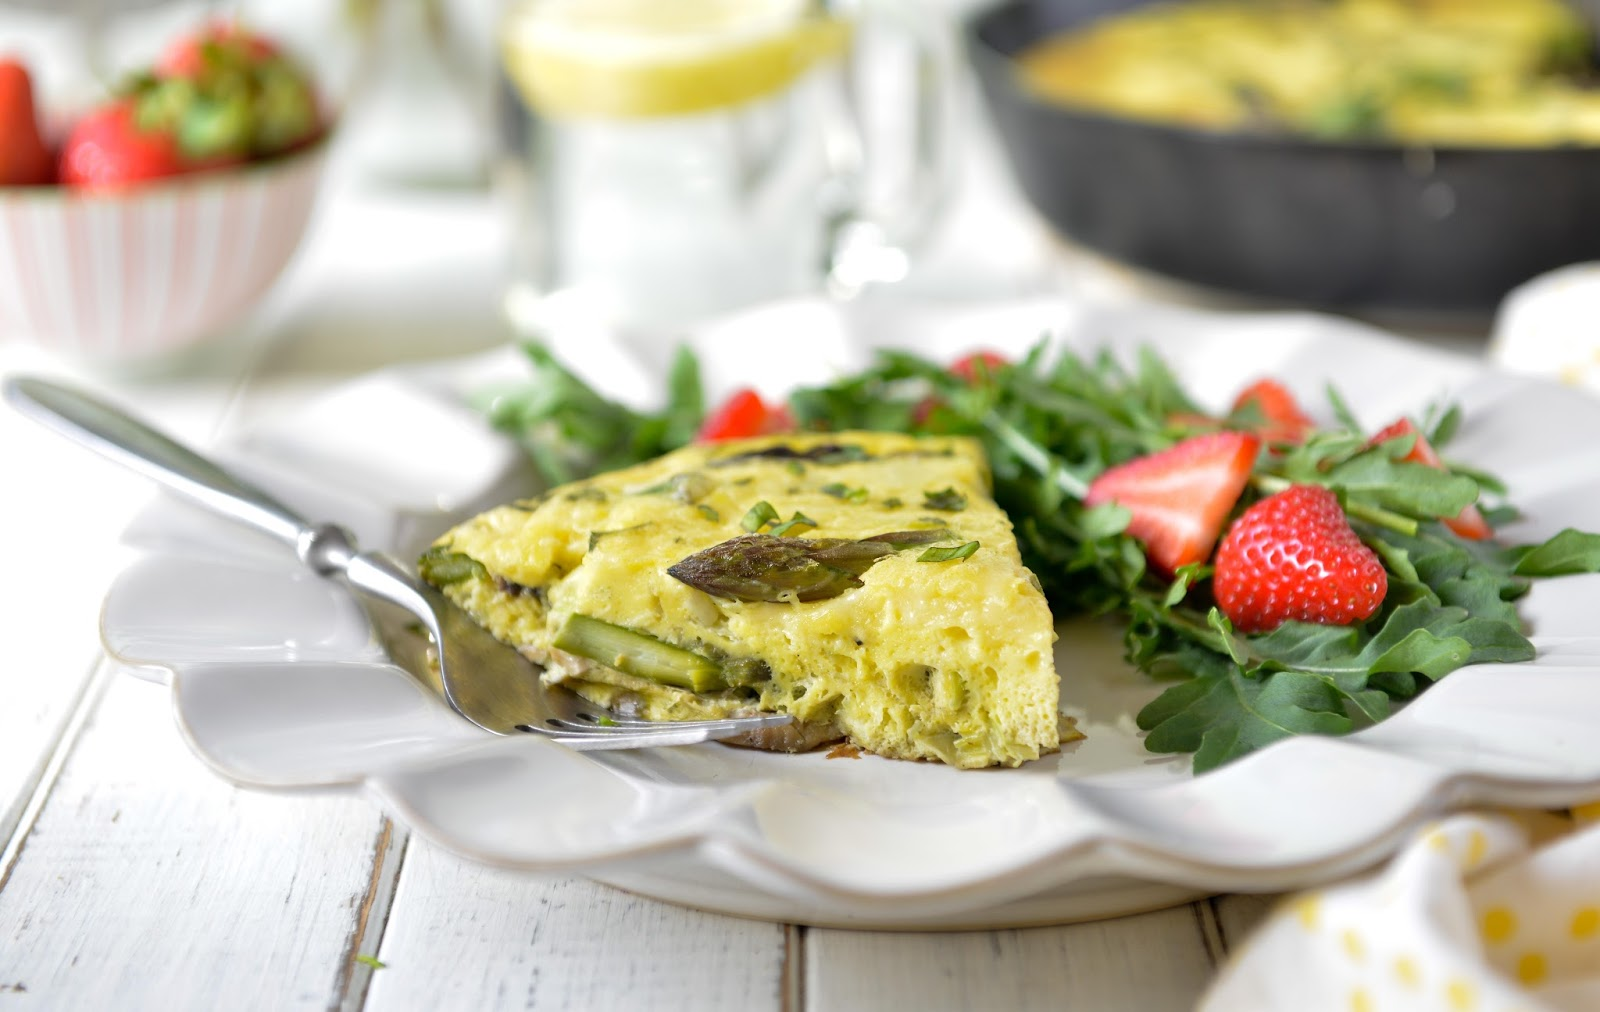 Nourishing Meals®: Asparagus, Leek, and Mushroom Frittata